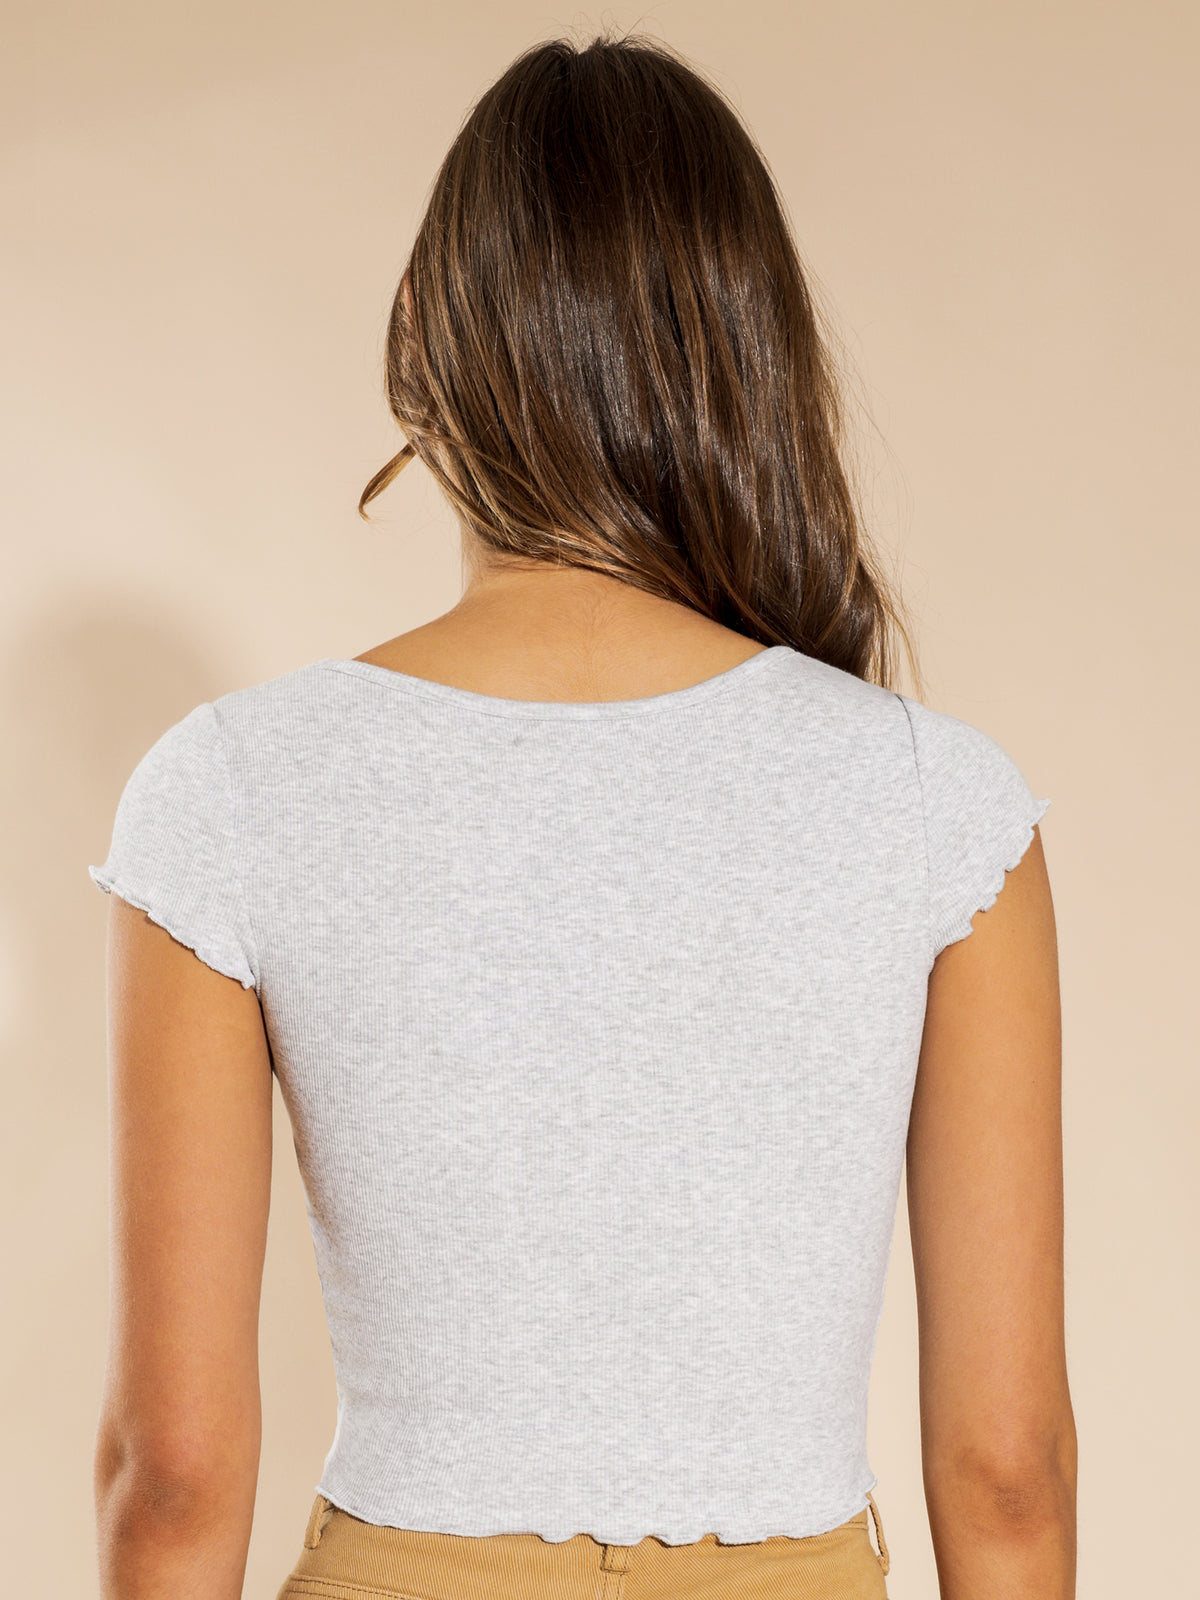 Freya Ruched Front T-Shirt in Grey Marle